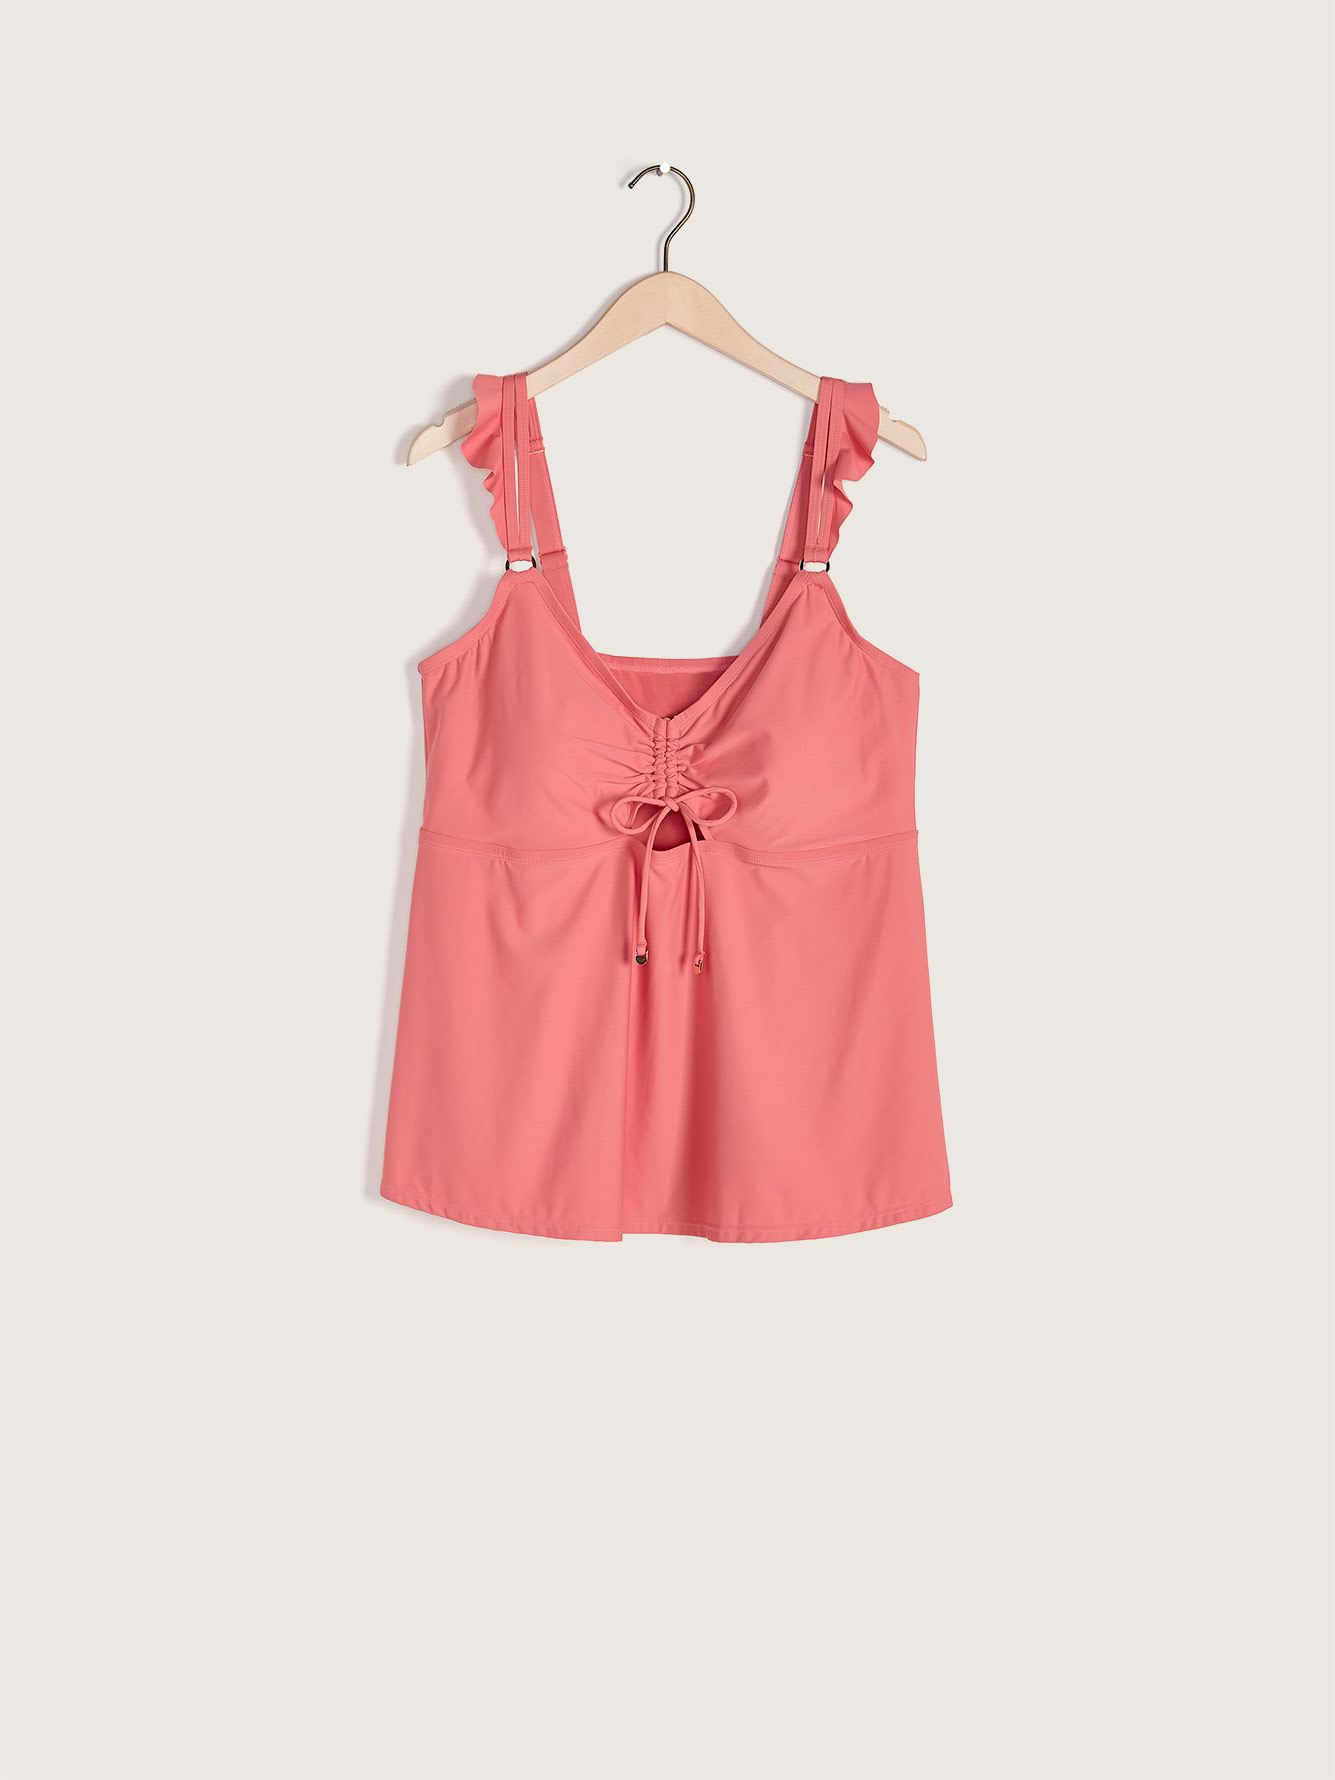 Adjustable Tankini Top with Frills - Addition Elle